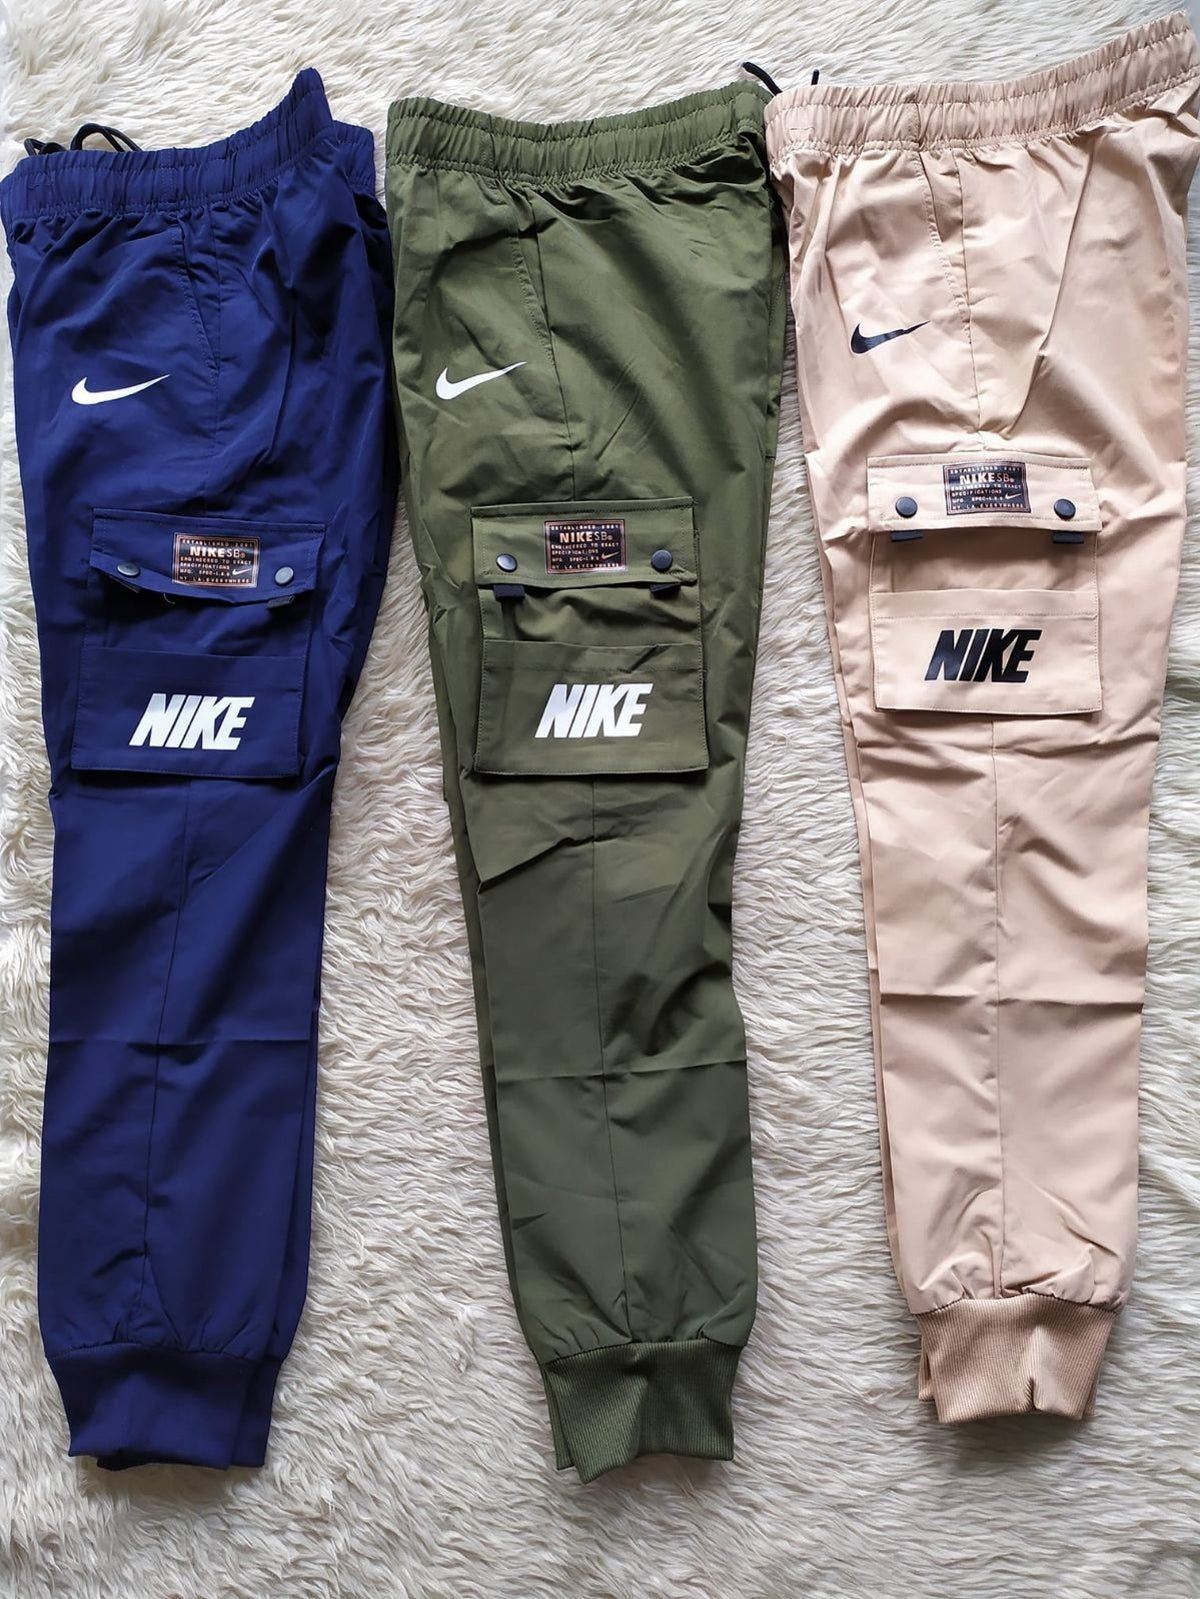 jogger cargo pants #nikeoutfits in 2020